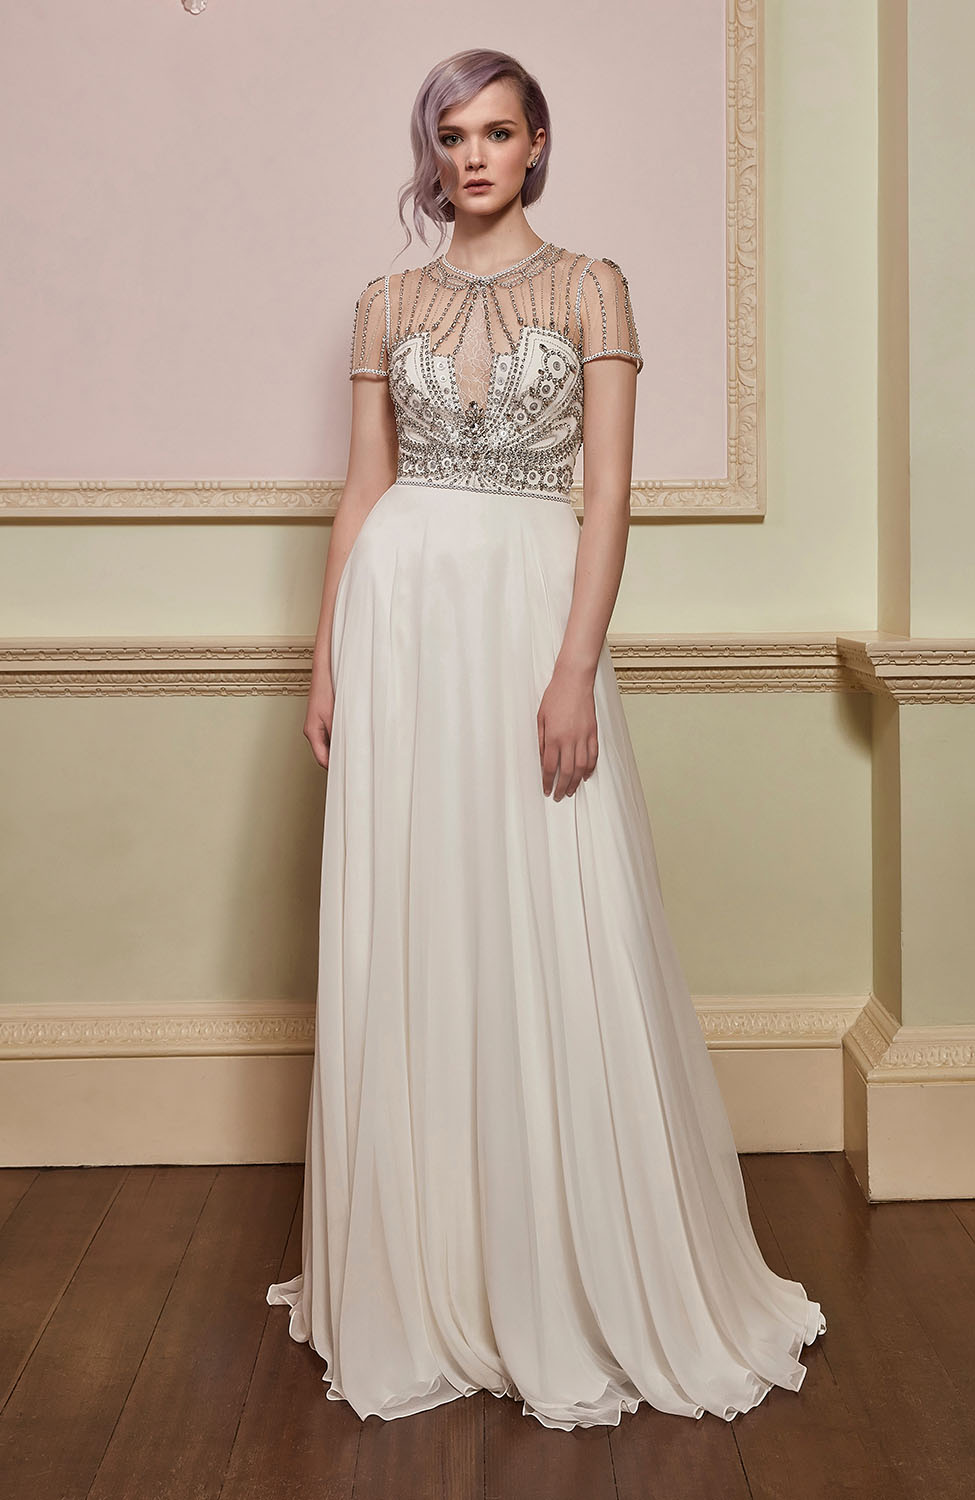 Jenny packham destiny size 12 wedding dress sale price 3360 jenny packham destiny 1 junglespirit Image collections